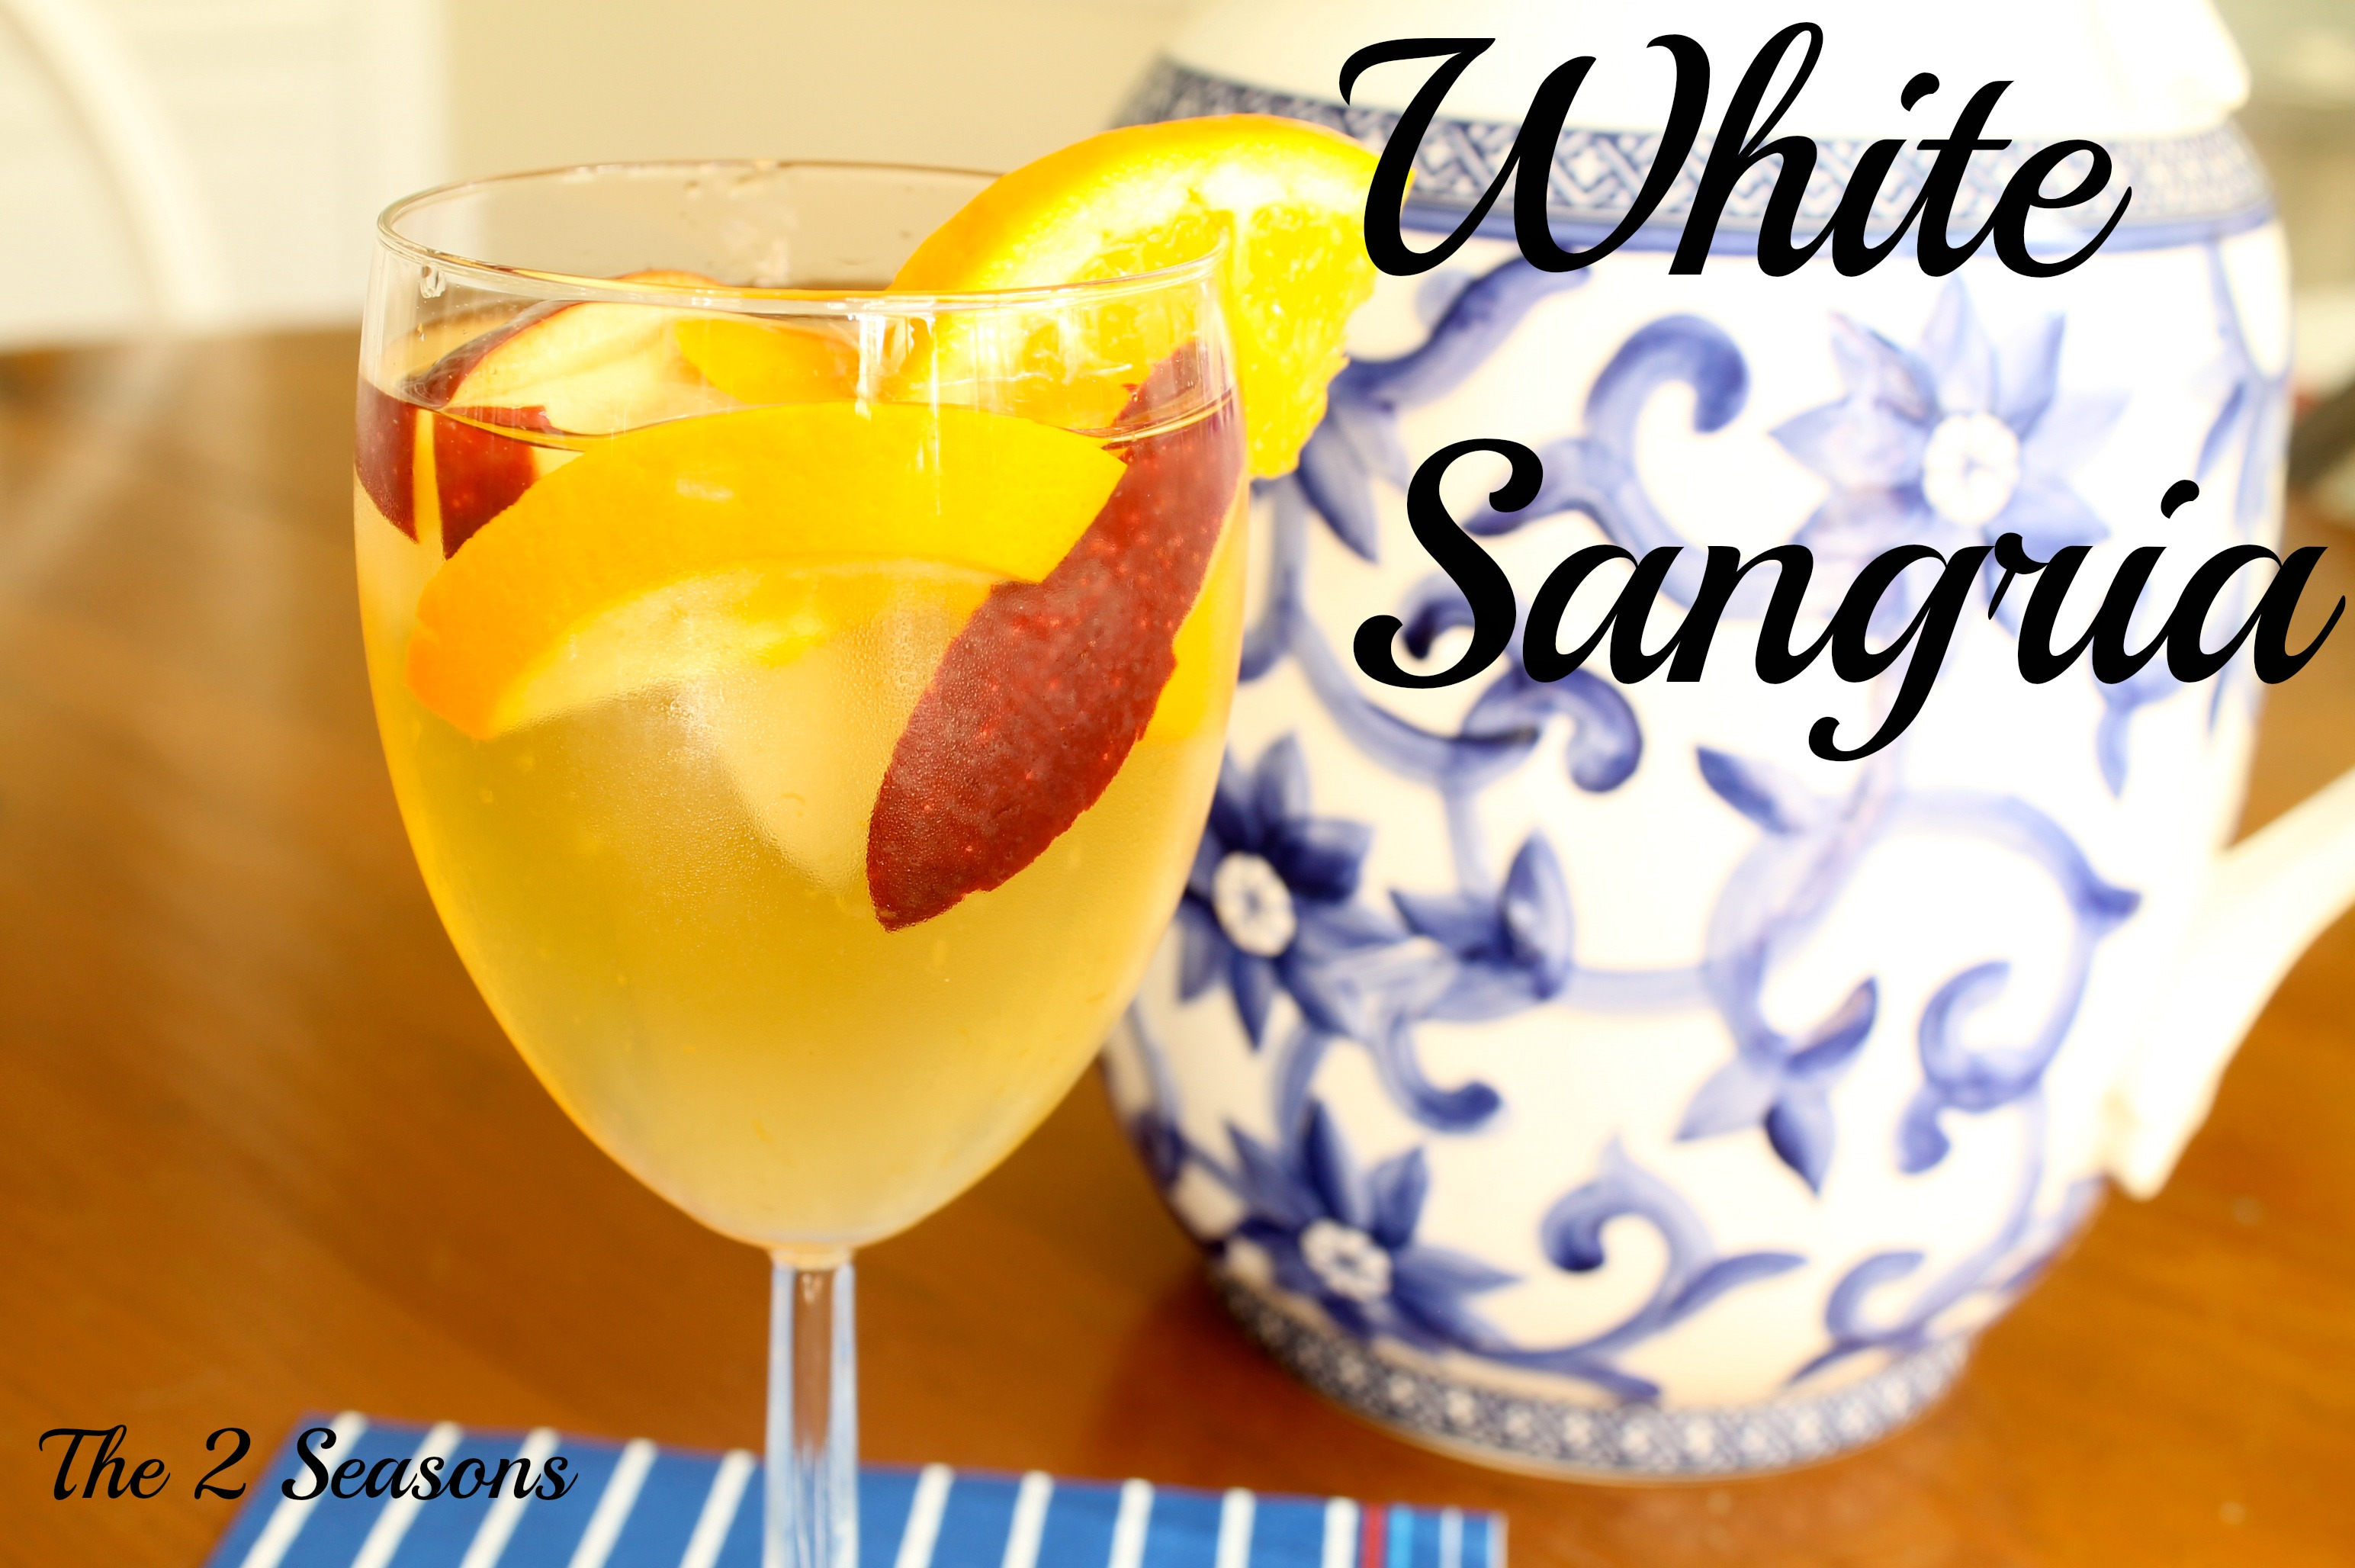 White sangria - The 2 Seasons